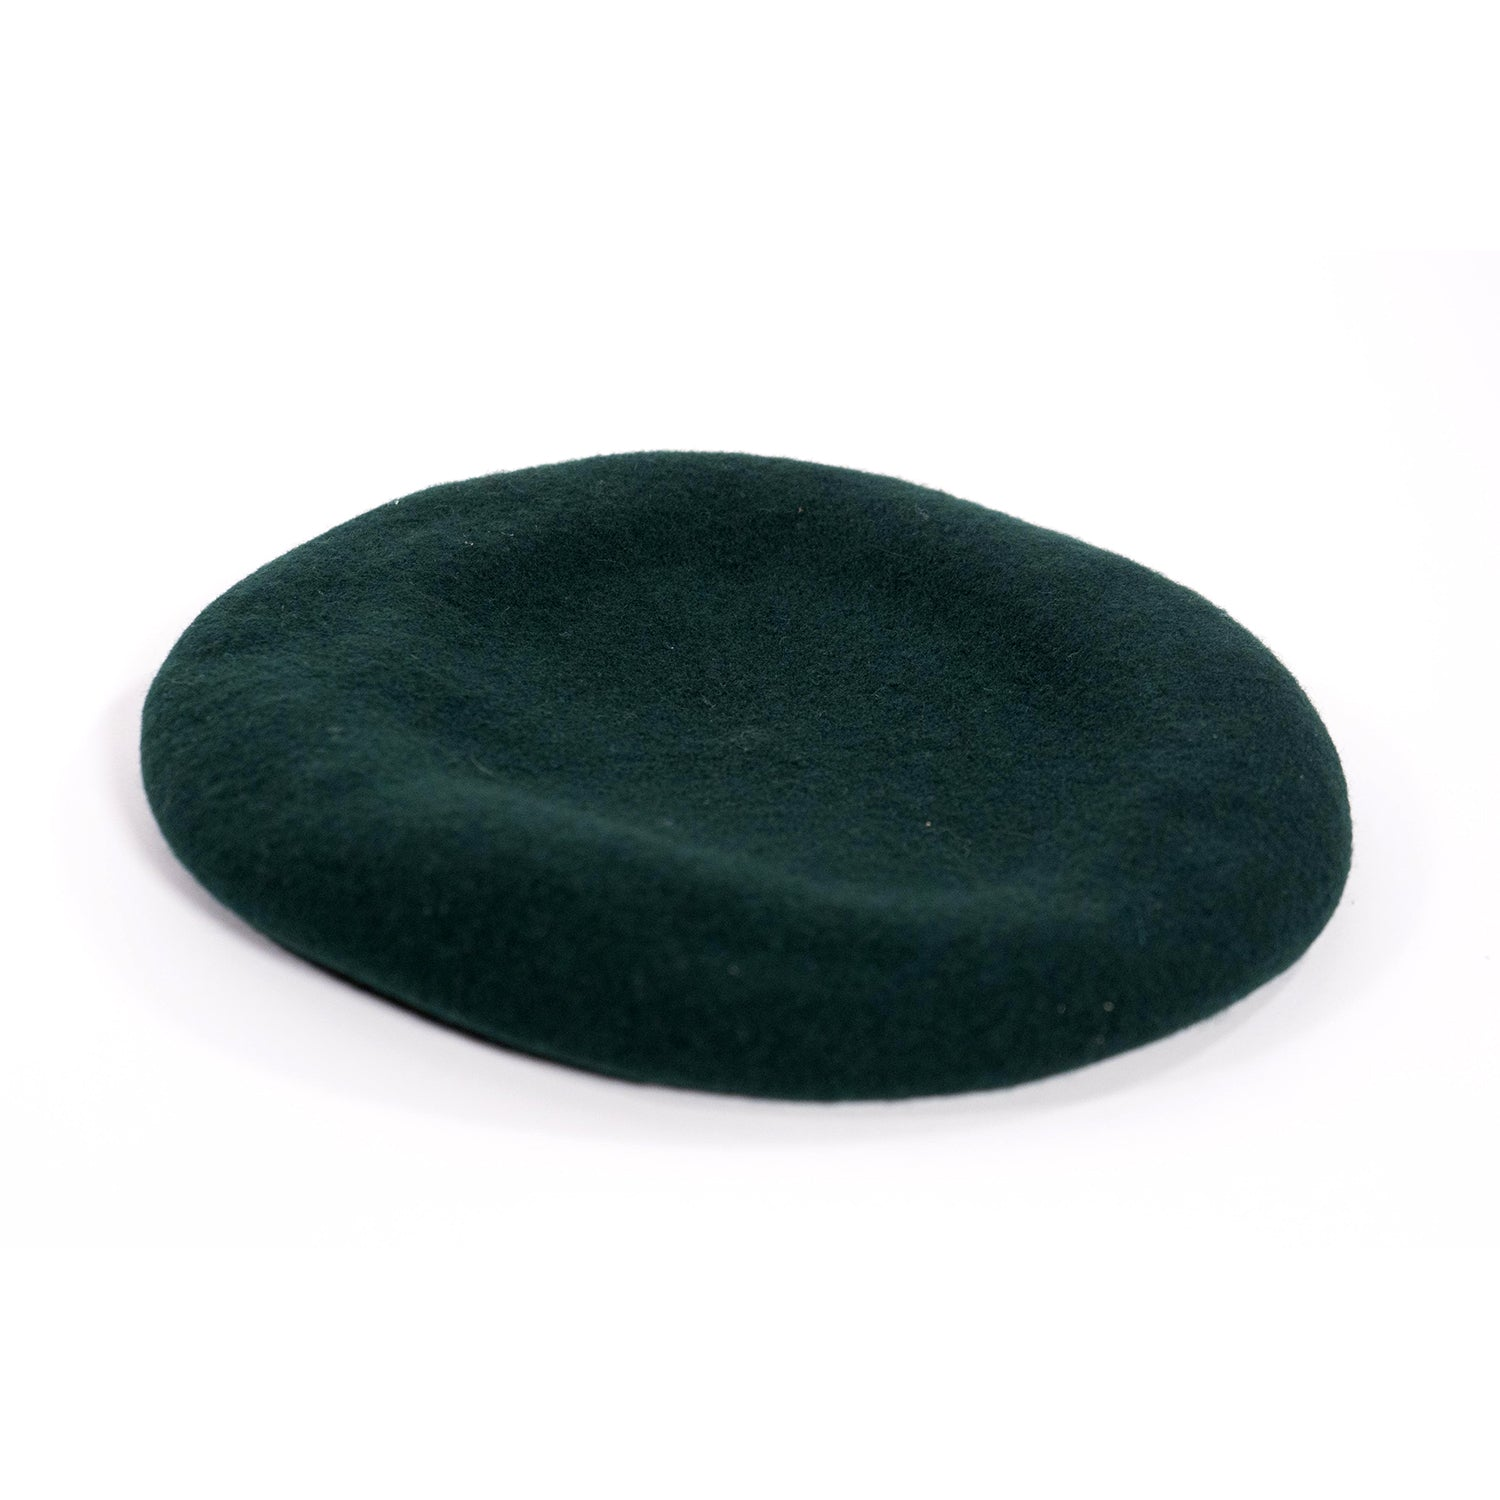 Dark Green Beret (One Size Fits All)